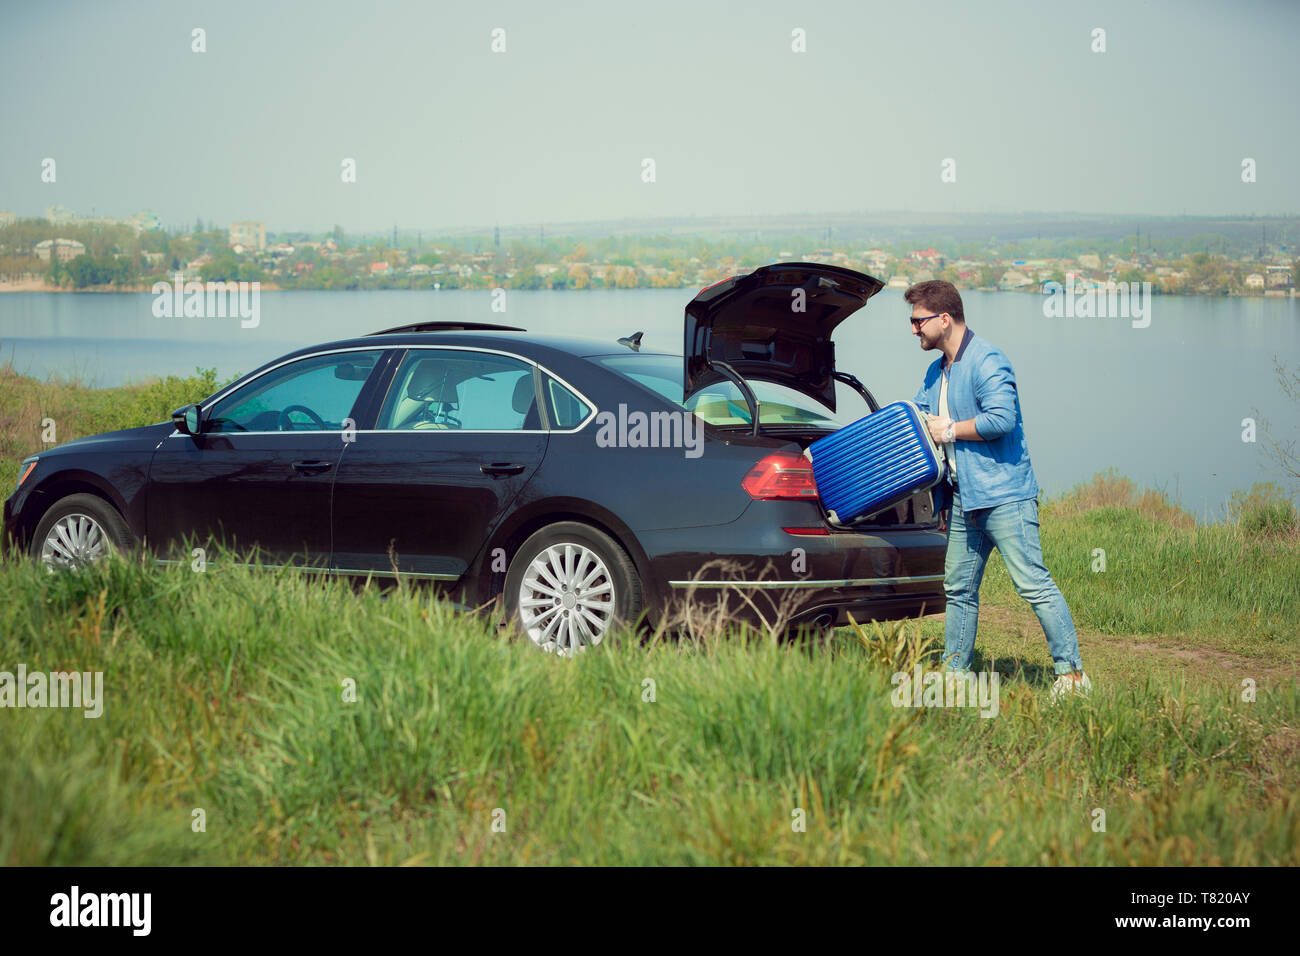 Handsome smiling man in jeans, jacket and sunglasses going to vacations, loading his suitcase in car trunk on the river's side. Preparing for weekend' trip. Concept of summertime, resort, chilling. - Stock Image